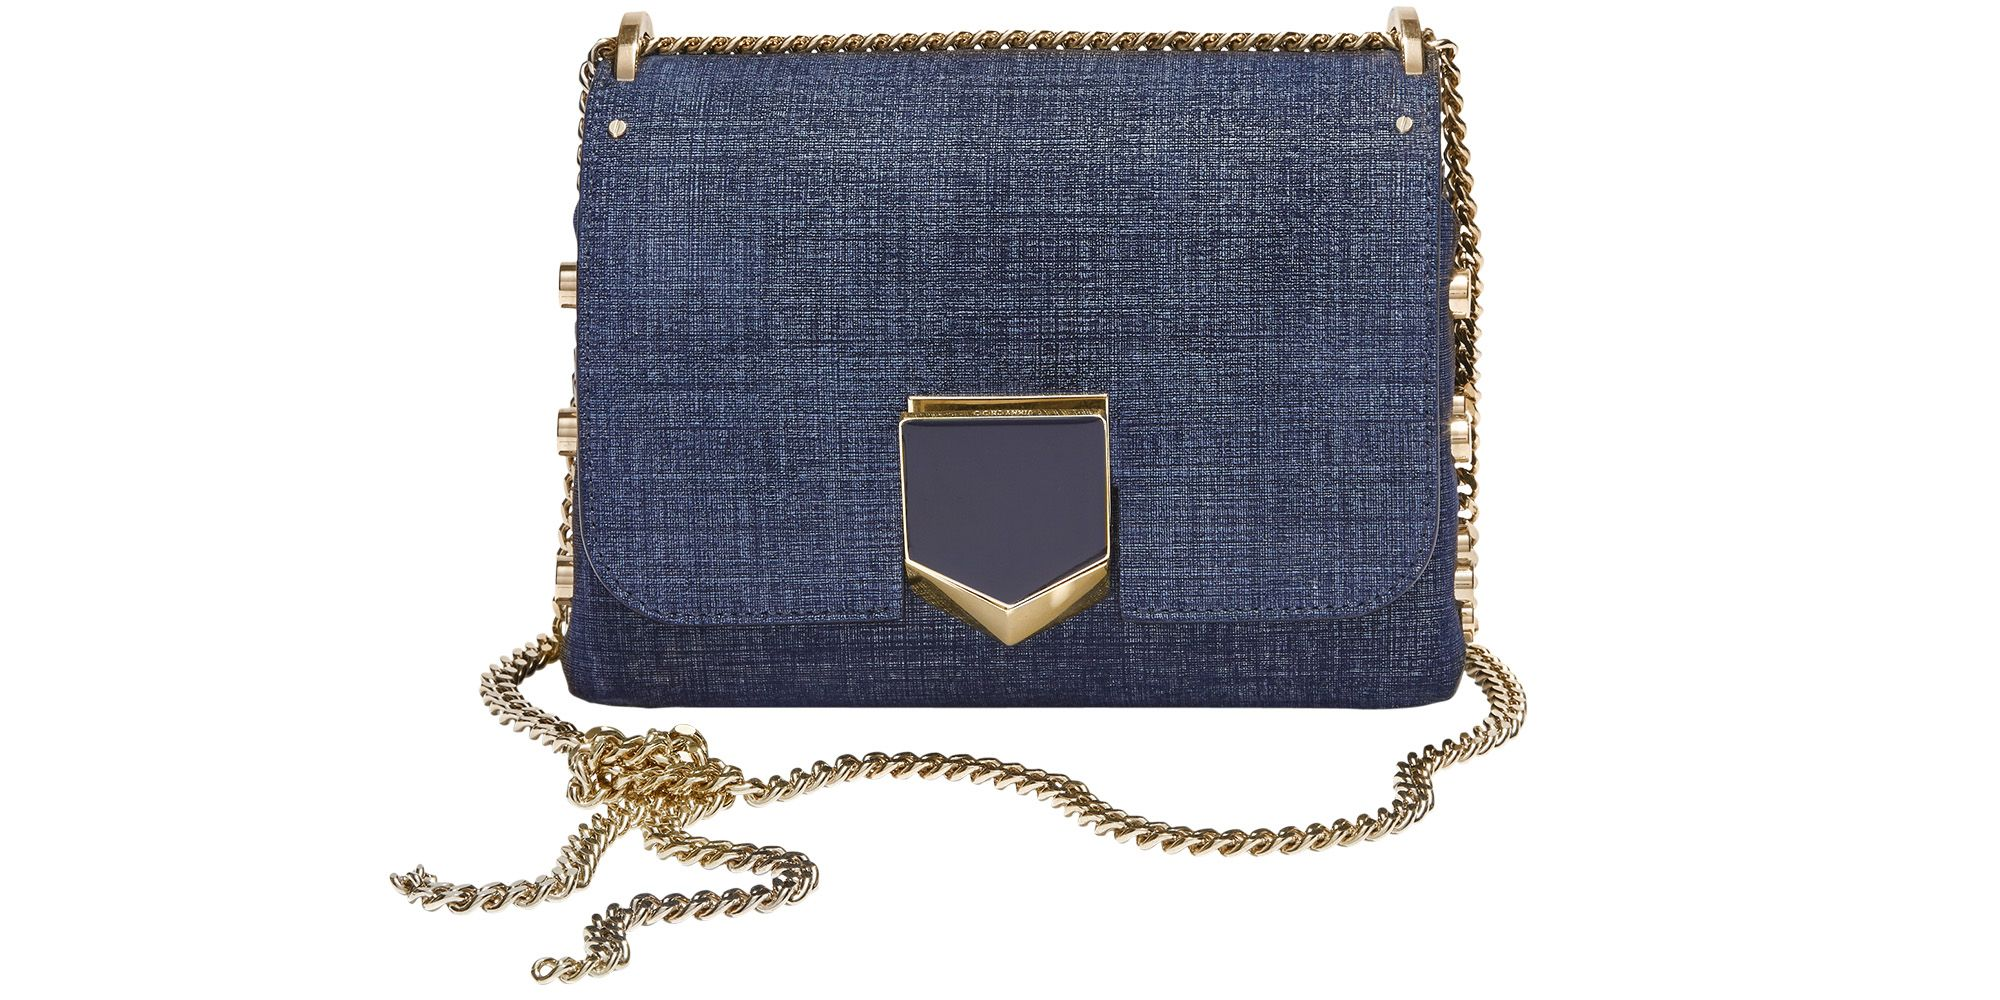 "<p><strong>Jimmy Choo </strong>bag, $1,450, <a href="" jimmychoo.com"" target=""_blank"">jimmychoo.com</a>. </p>"